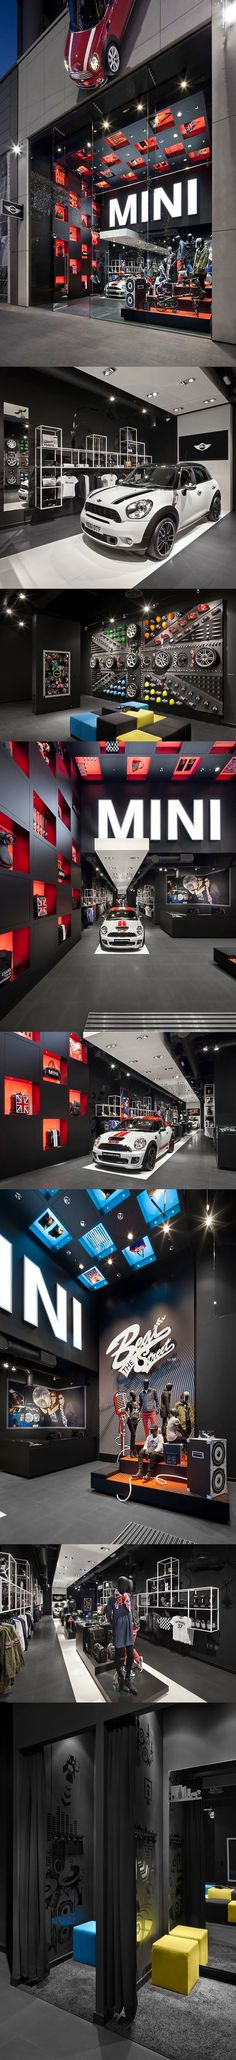 Mini showroom, London